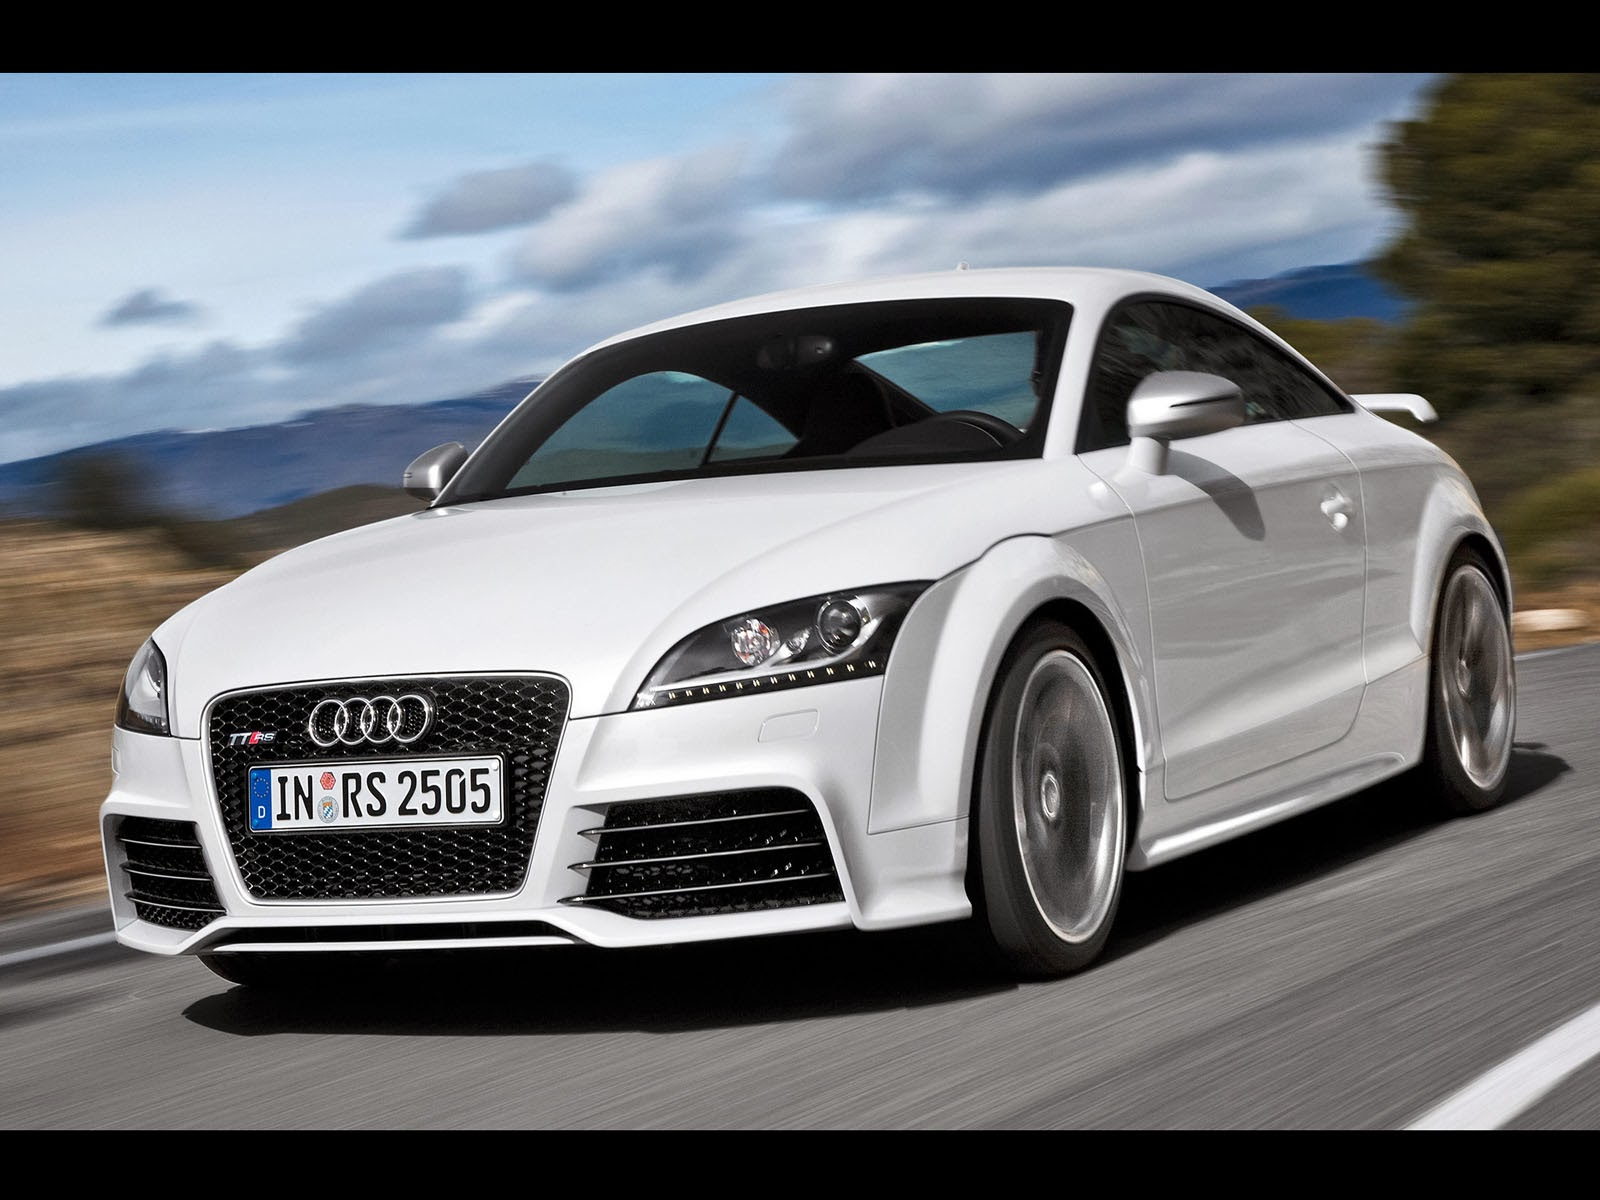 Audi rs5 2015 price in india 14